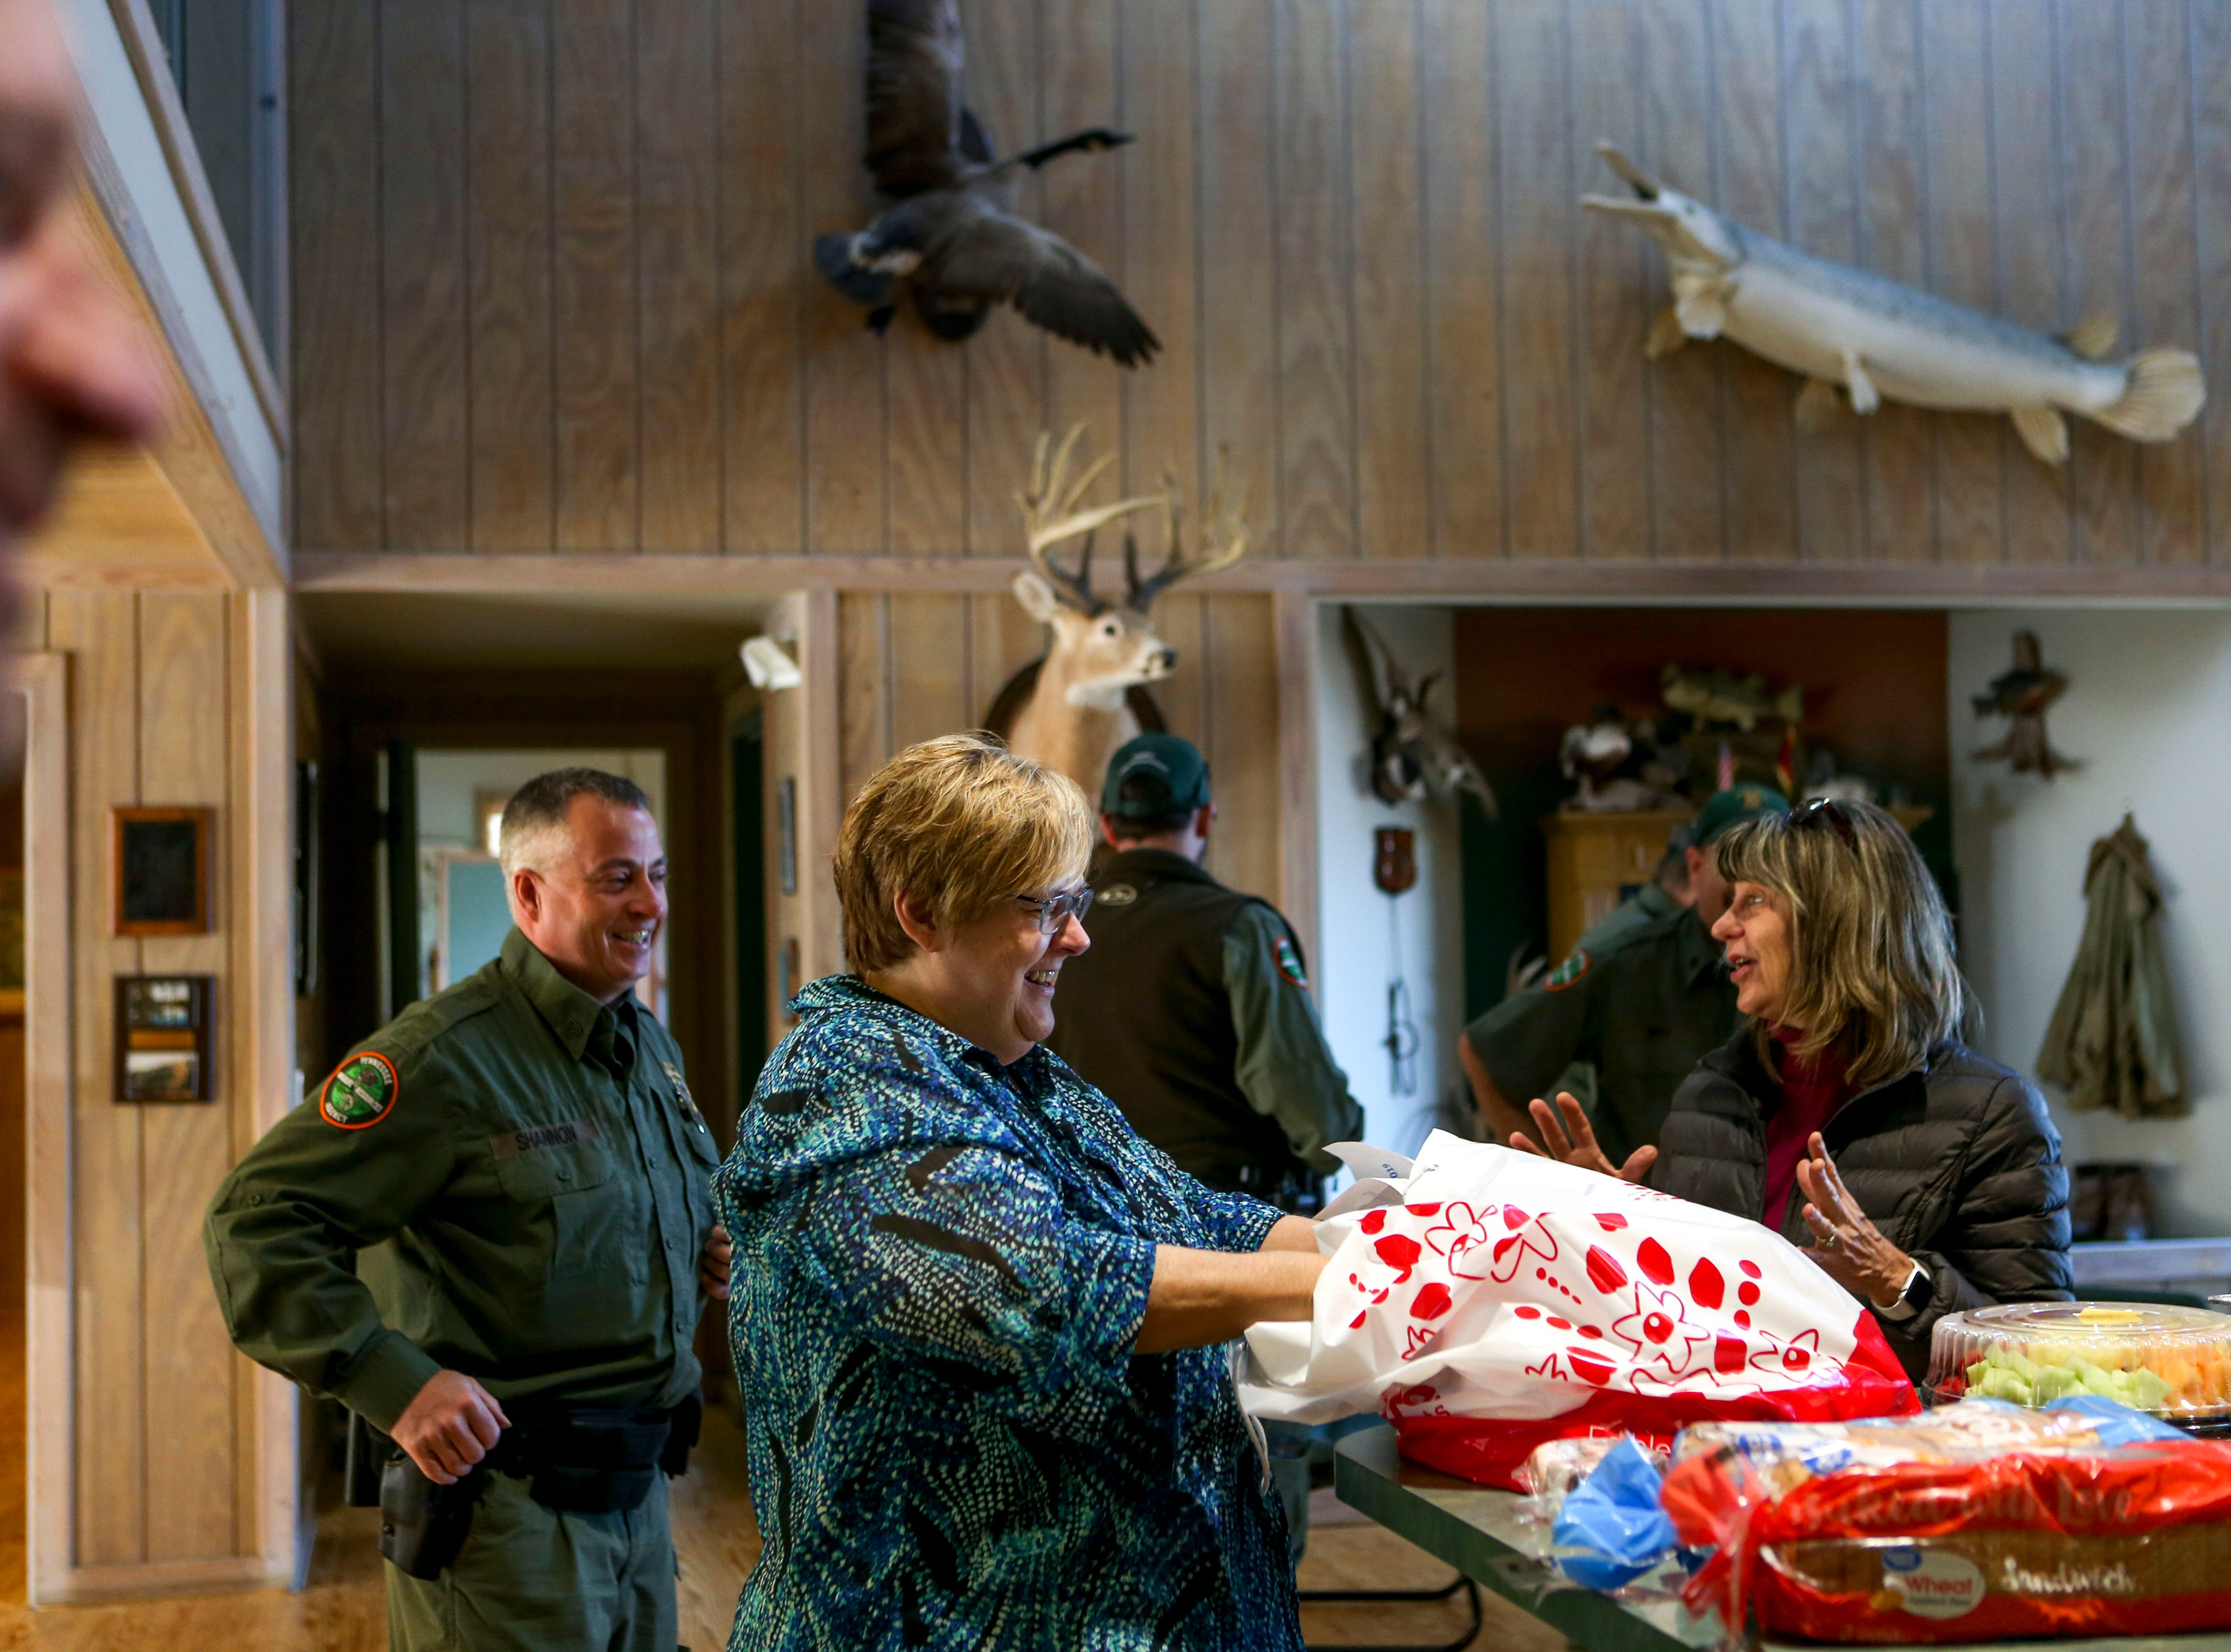 Linda Rizzuto, left, and Beverly Denton, right, drop off food for Wildlife Resource Officers on National Law Enforcement Day at the Tennessee Wildlife Resource Agency Region One offices in Jackson, Tenn., on Wednesday, Jan. 9, 2019.